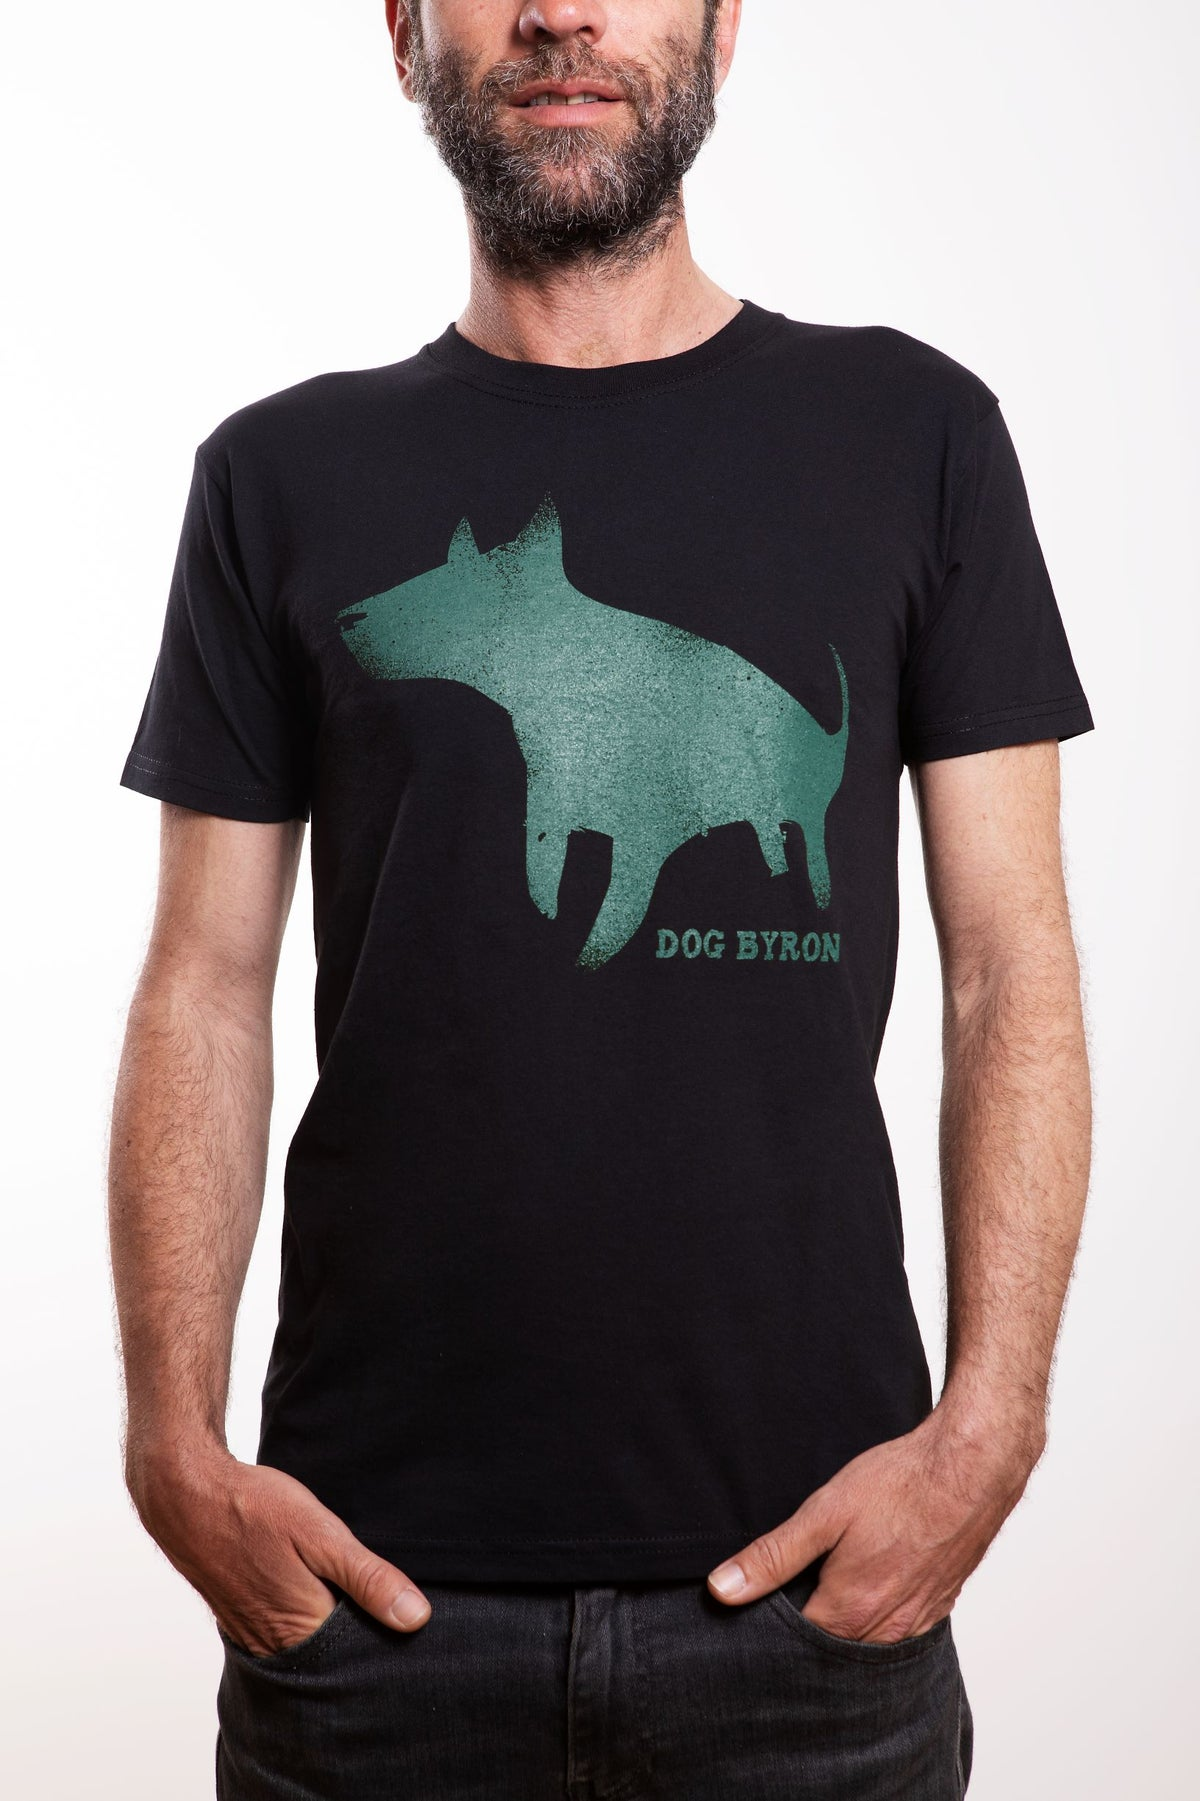 Image of Dog Byron - UNISEX - Green Logo